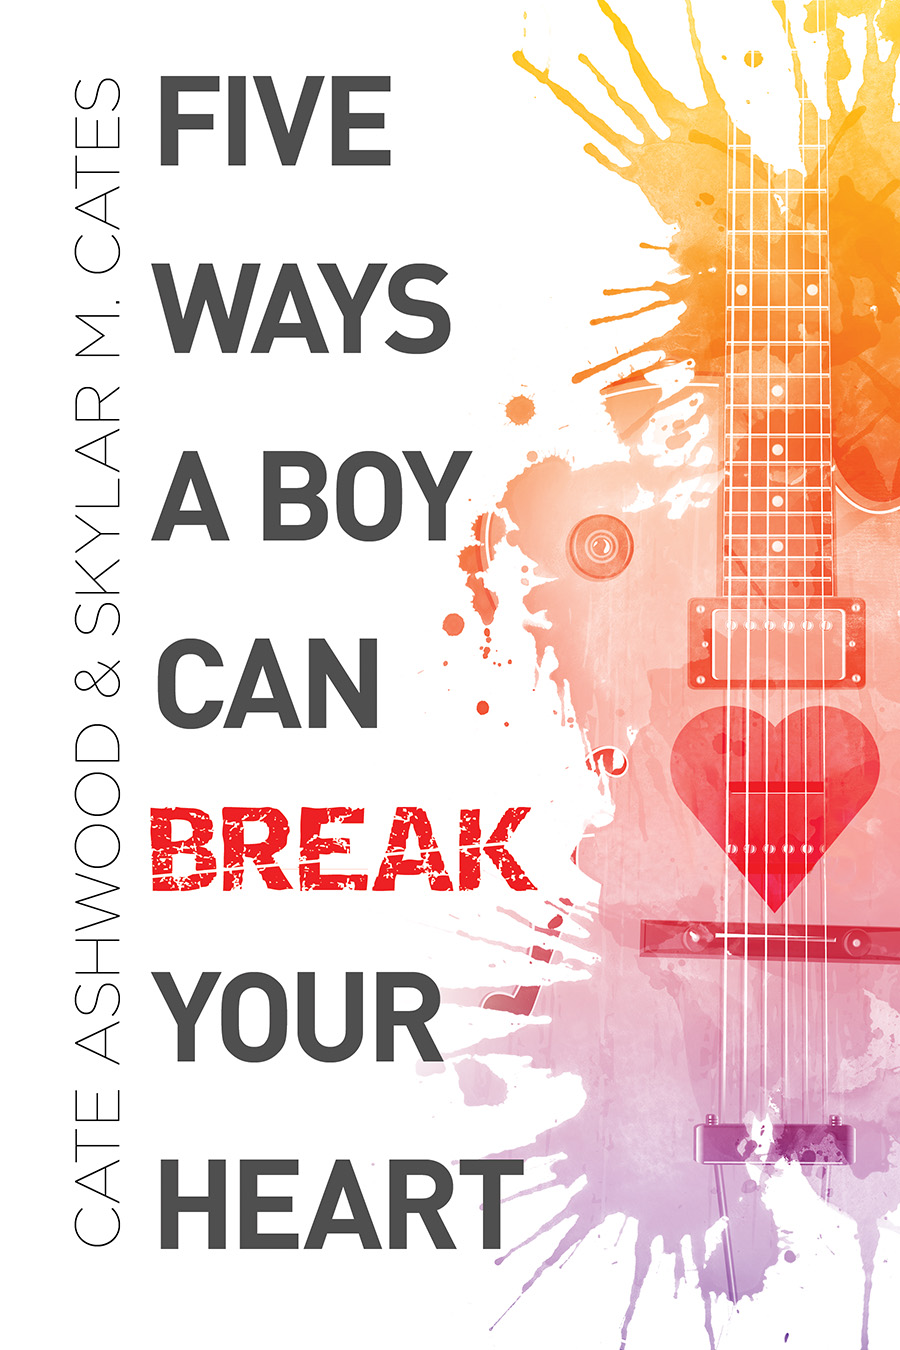 Guest Post and Giveaway: Five Ways a Boy Can Break Your Heart by Cate Ashwood and Skylar M. Cates